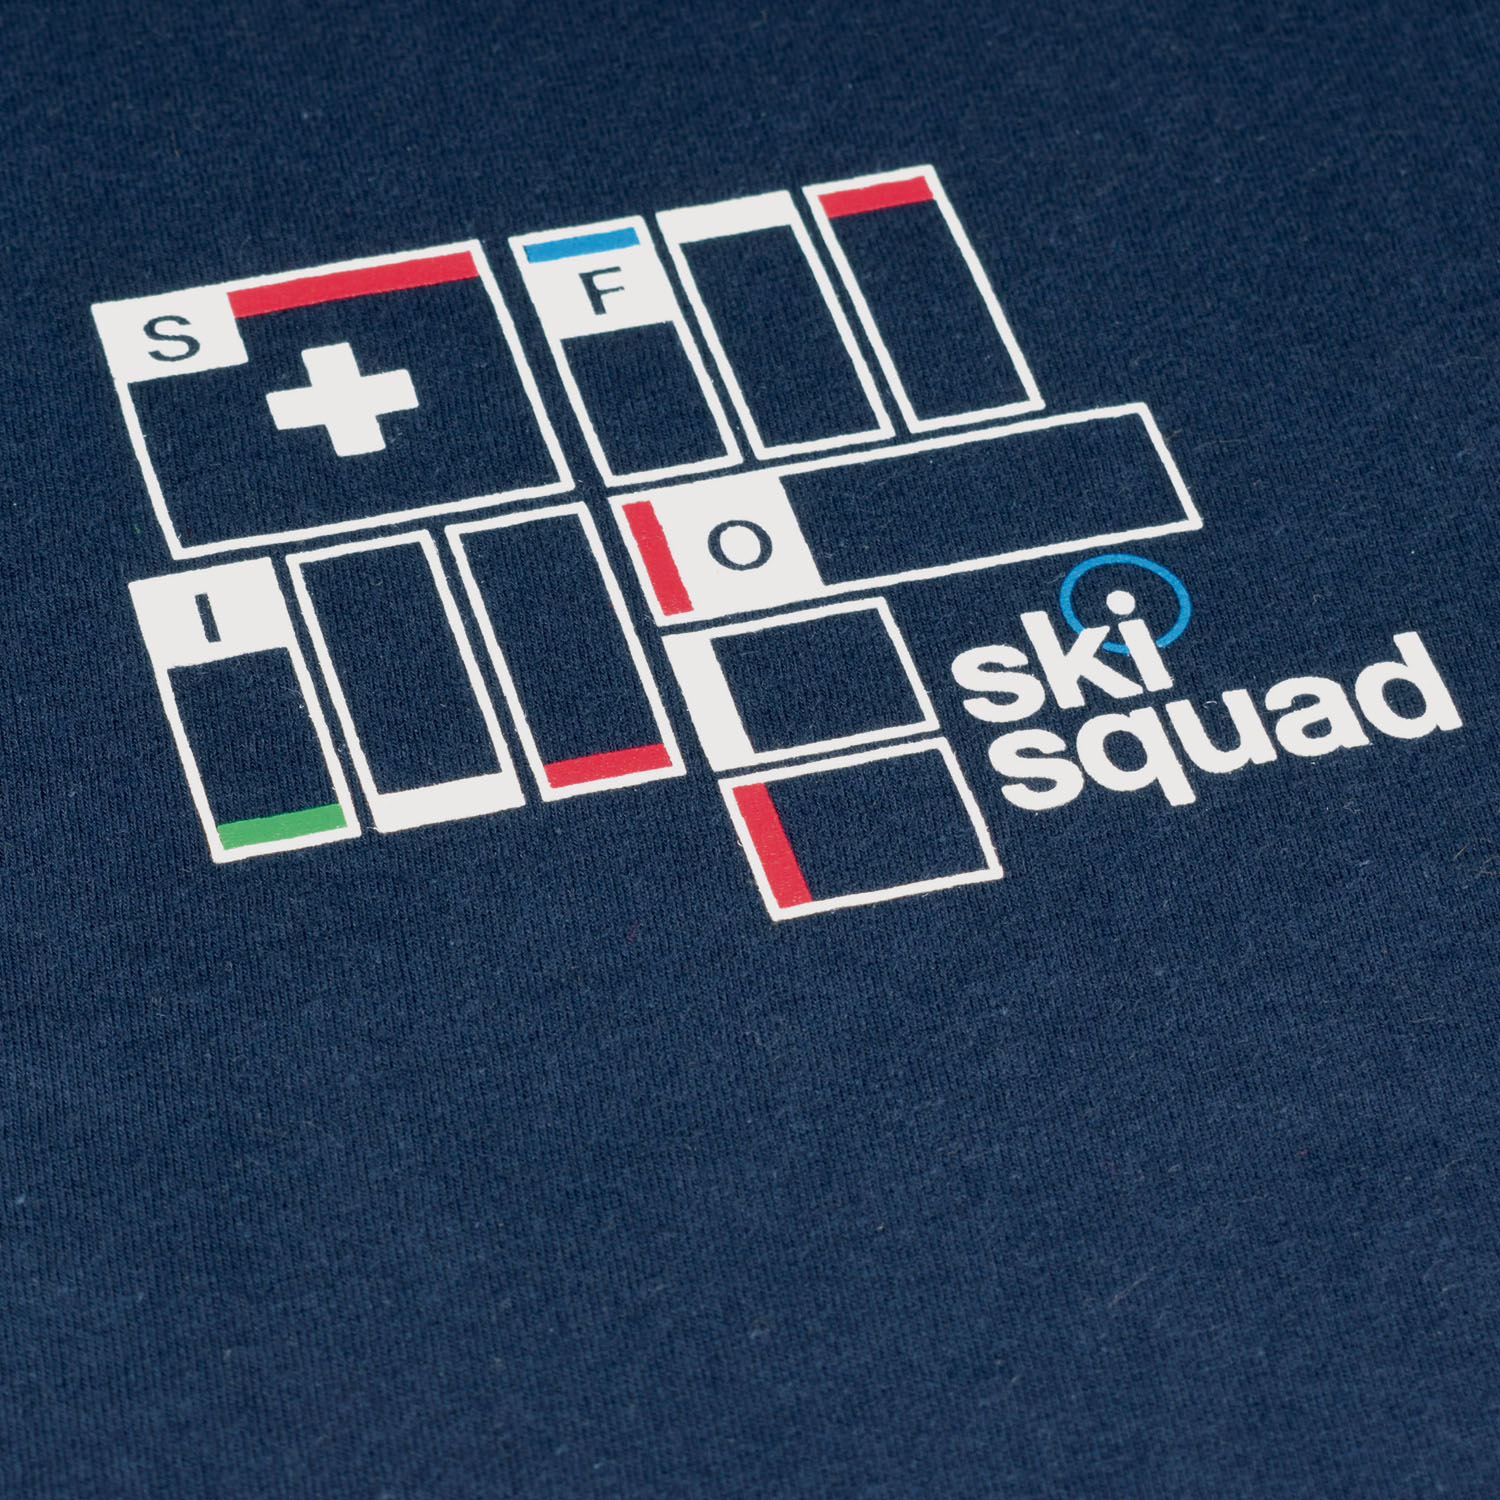 T-lab Ski Squad mens t-shirt close-up